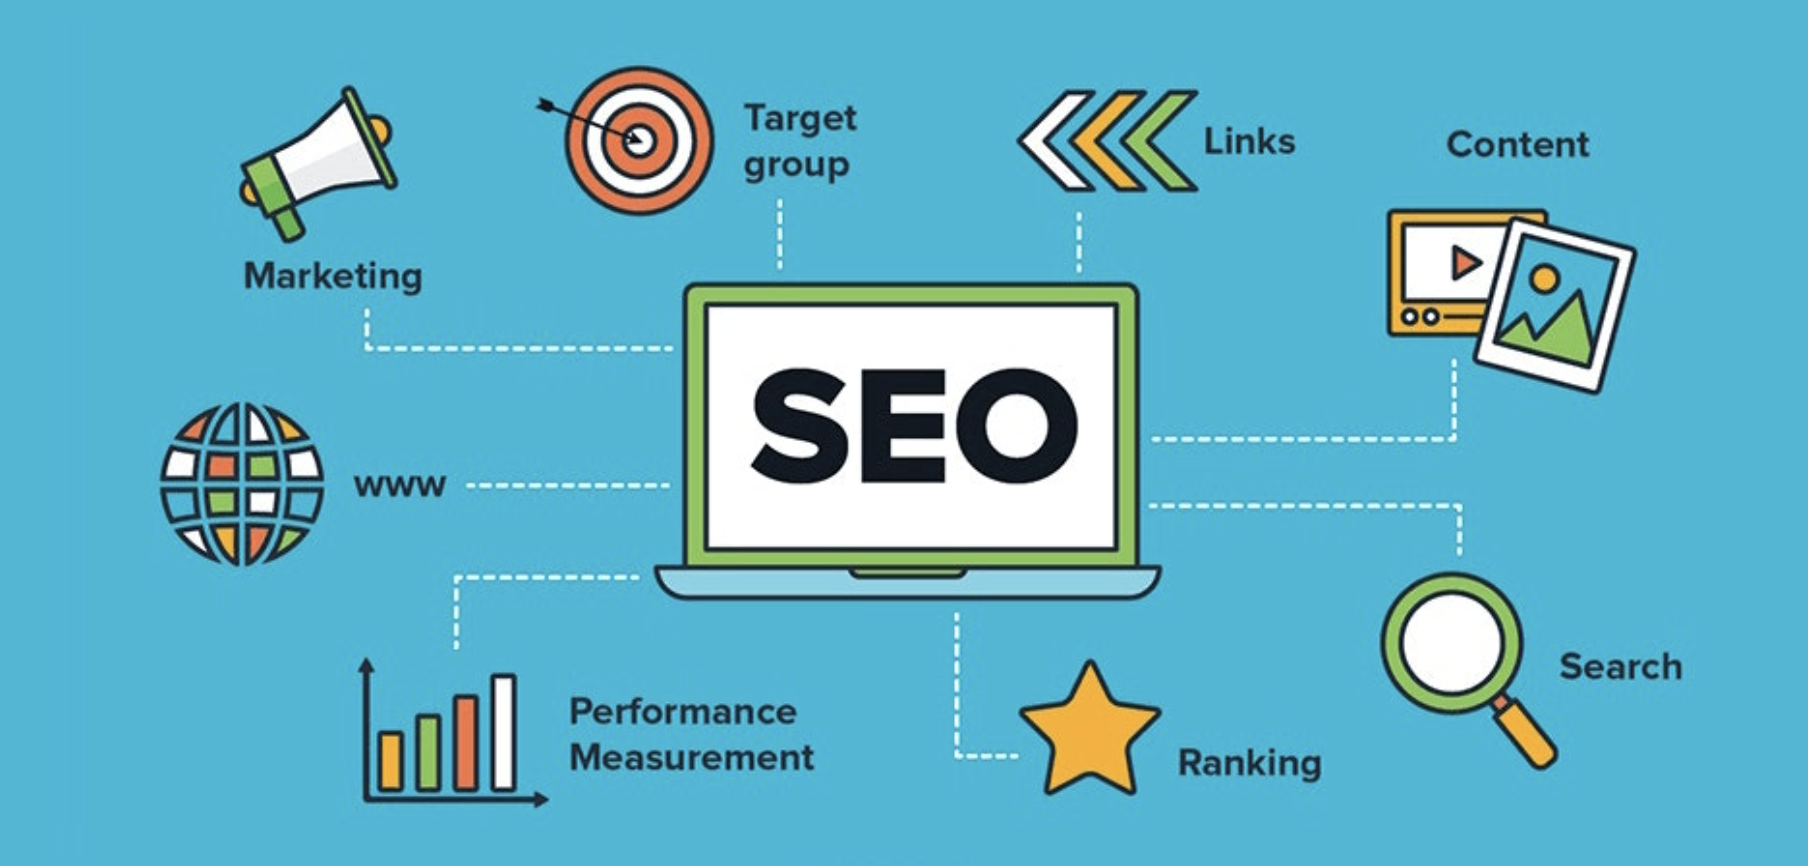 Get on the Front Page: An Introduction to SEO and Linking